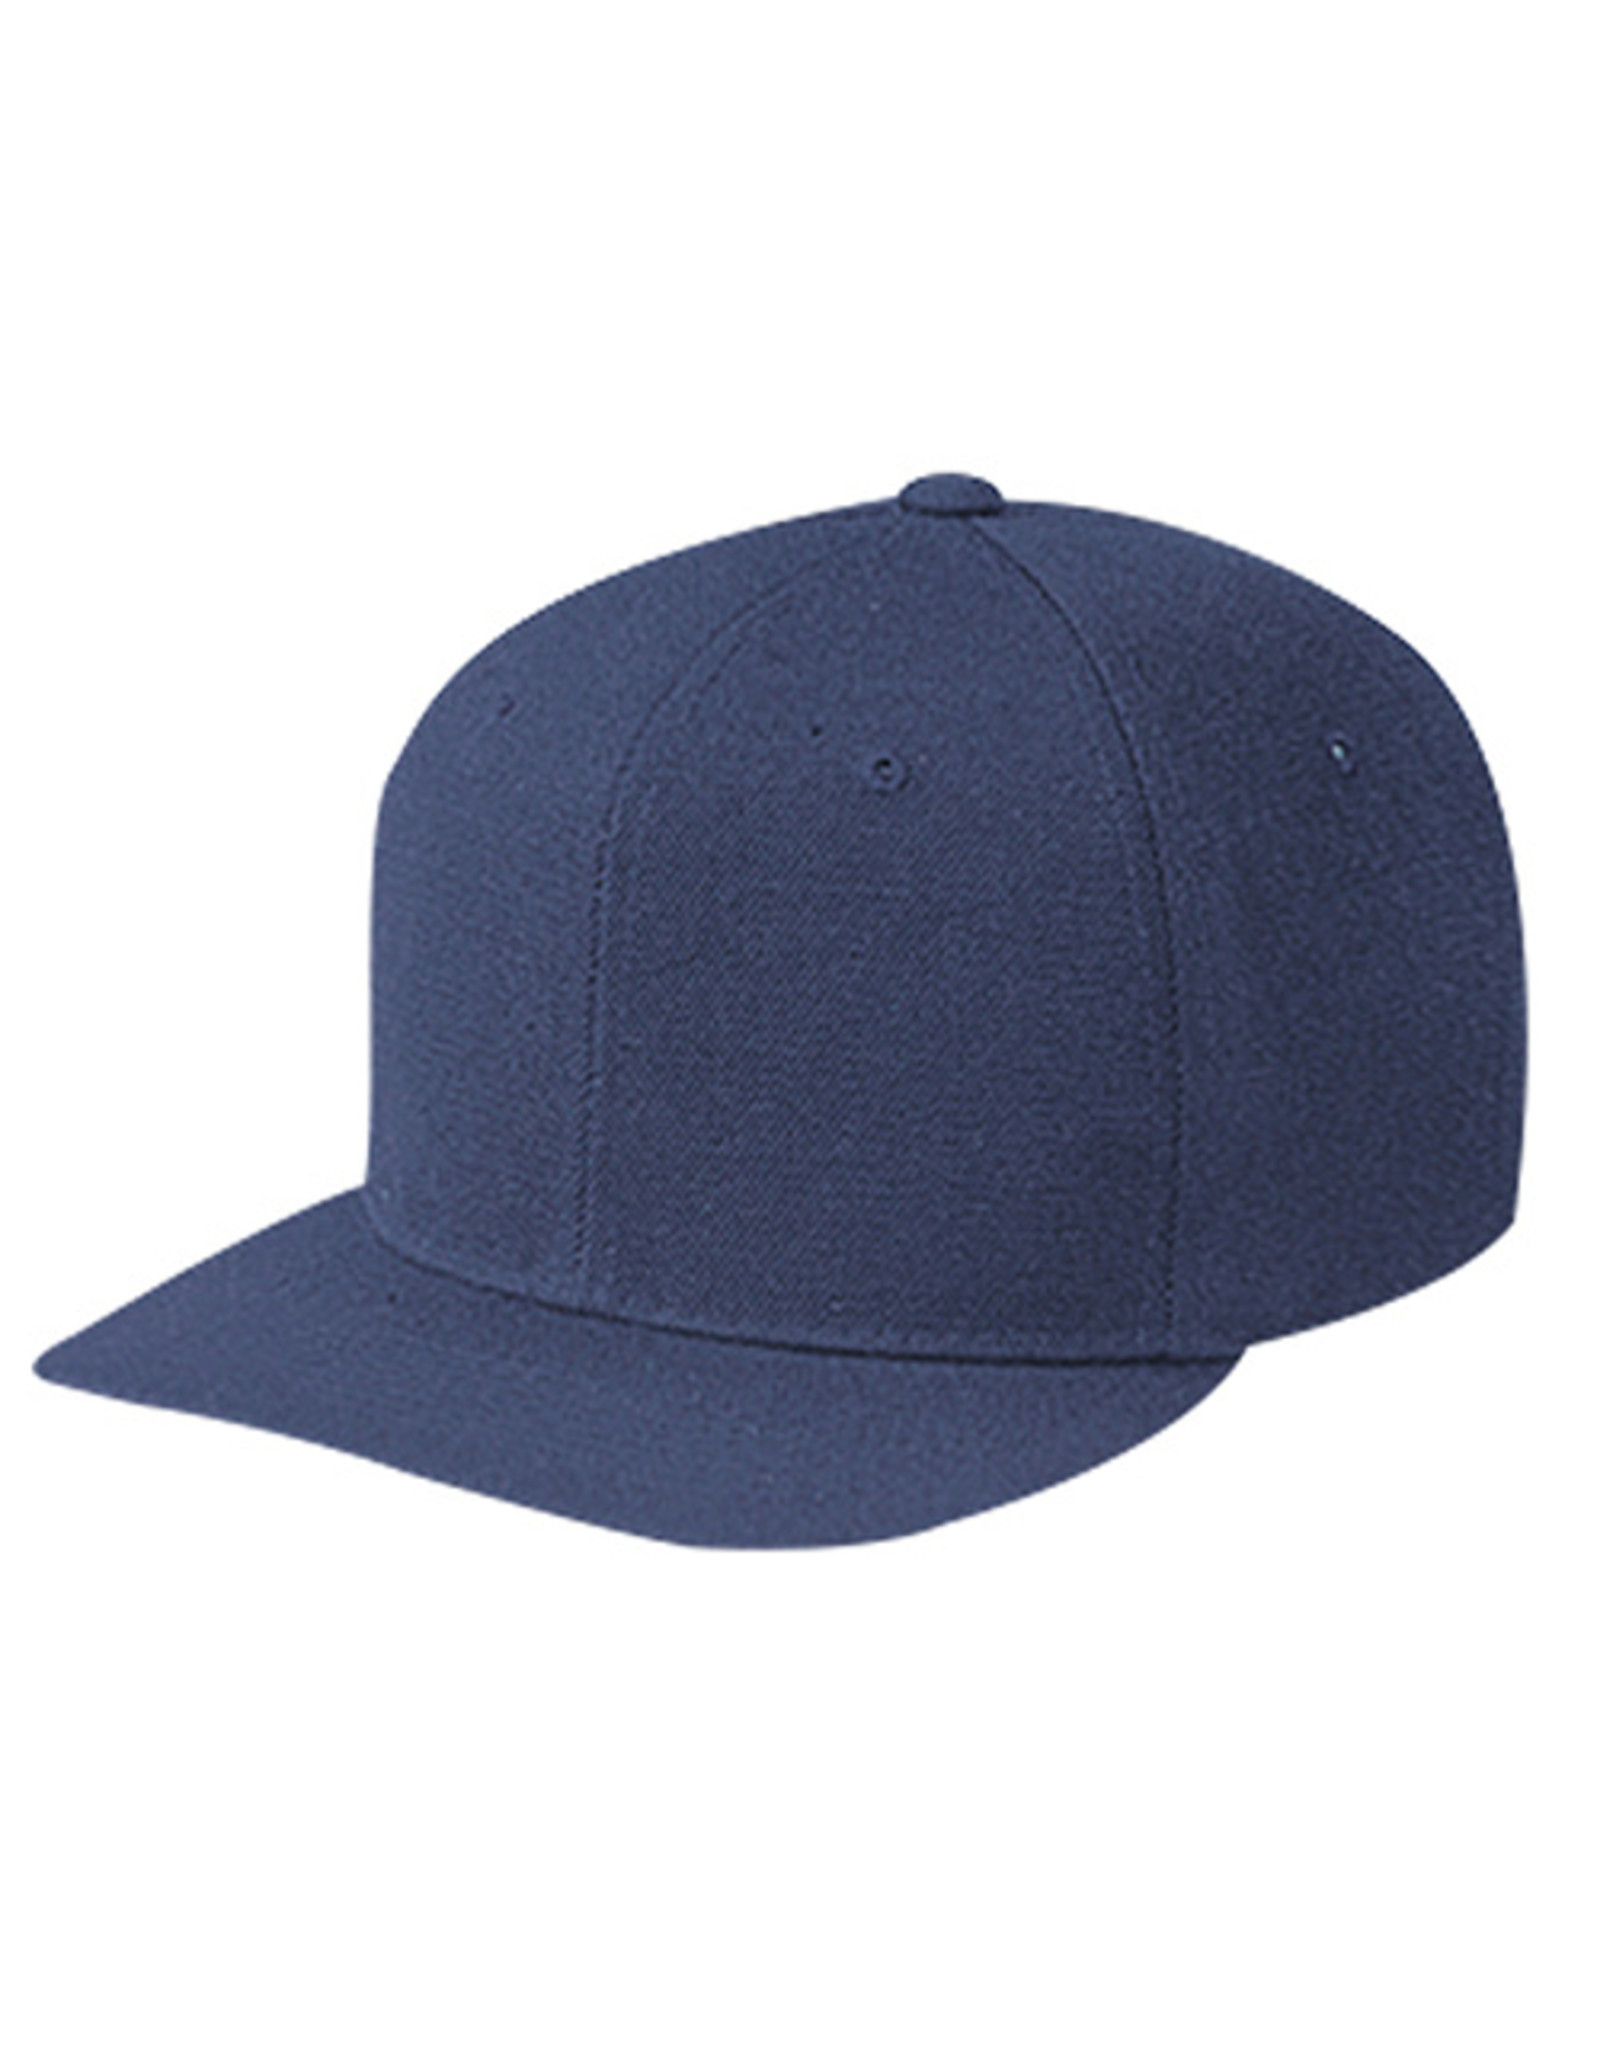 AJM Wool Serge Adjustable Cap - AJM B1240